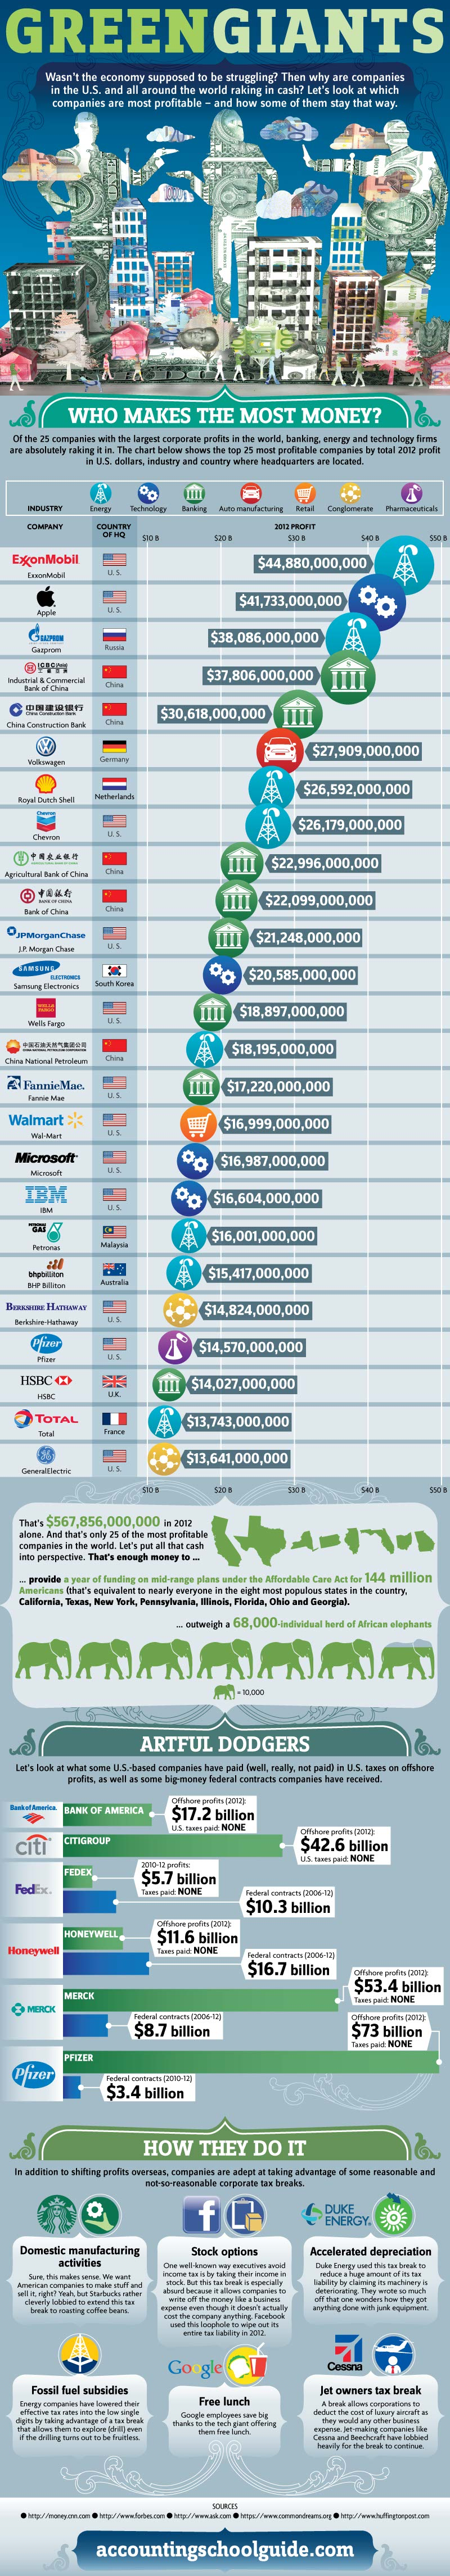 Most Profitable Companies 2012-Infographic